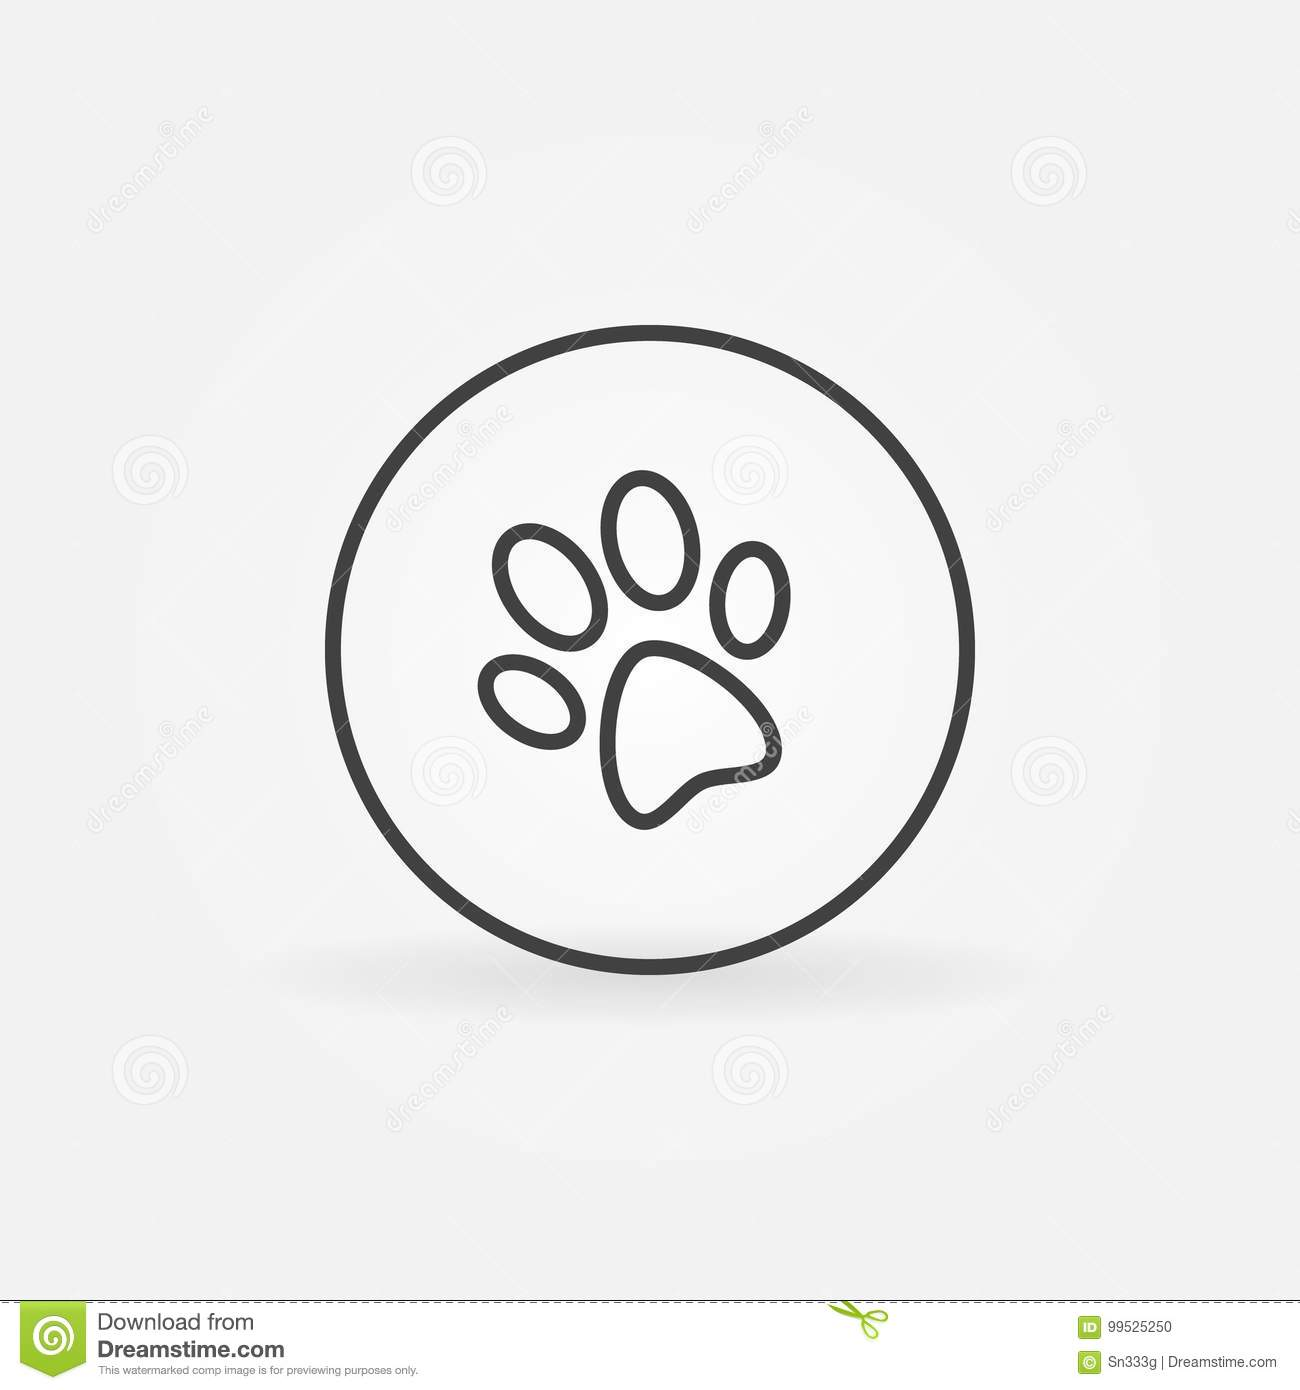 Dog paw in circle icon stock vector illustration of poster 99525250 dog paw in circle icon biocorpaavc